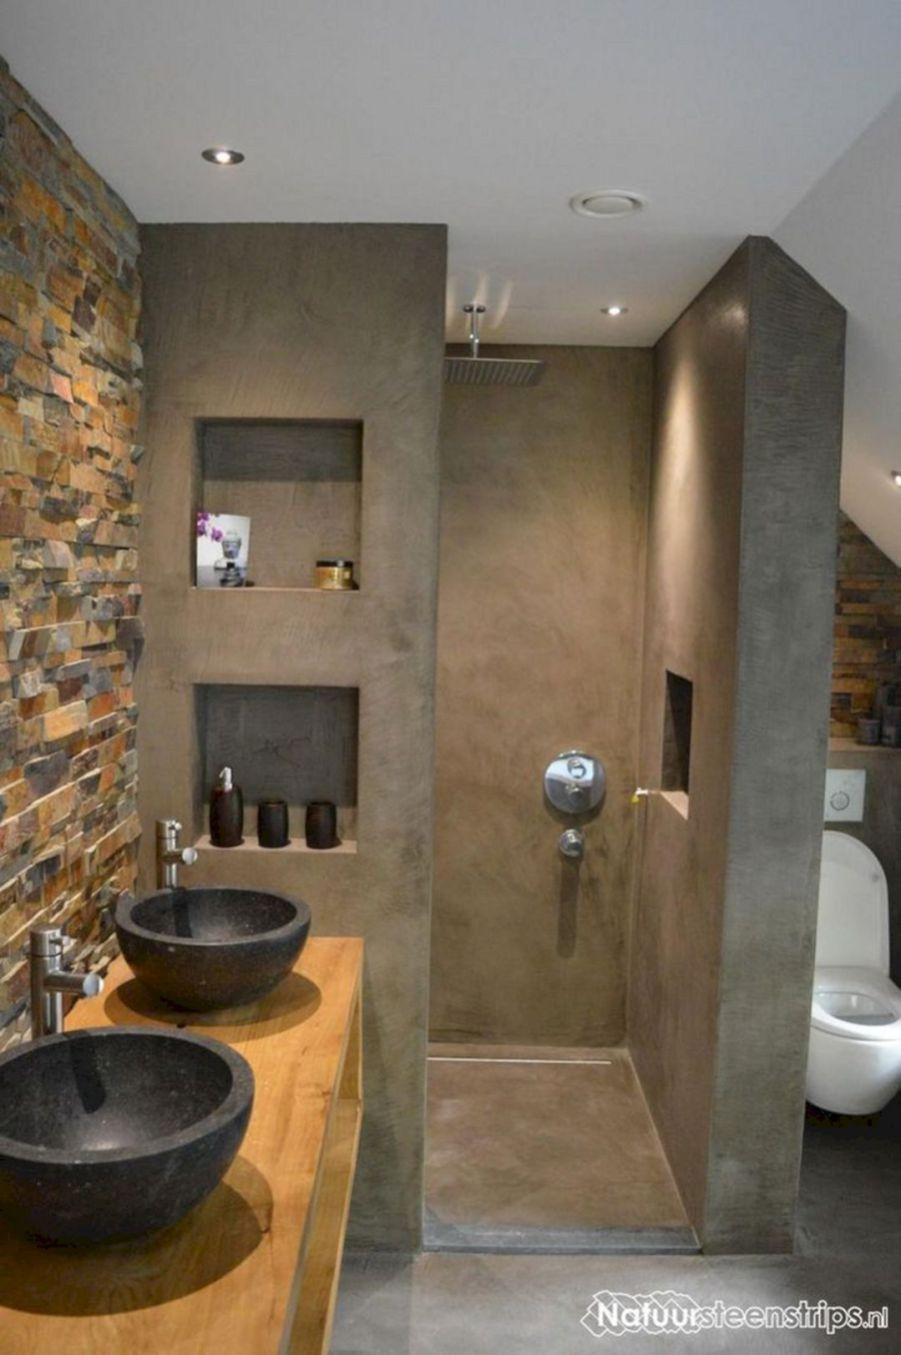 115 Extraordinary Small Bathroom Designs For Small Space 0102 Bathroom Design Small Small Bathroom Bathroom Design